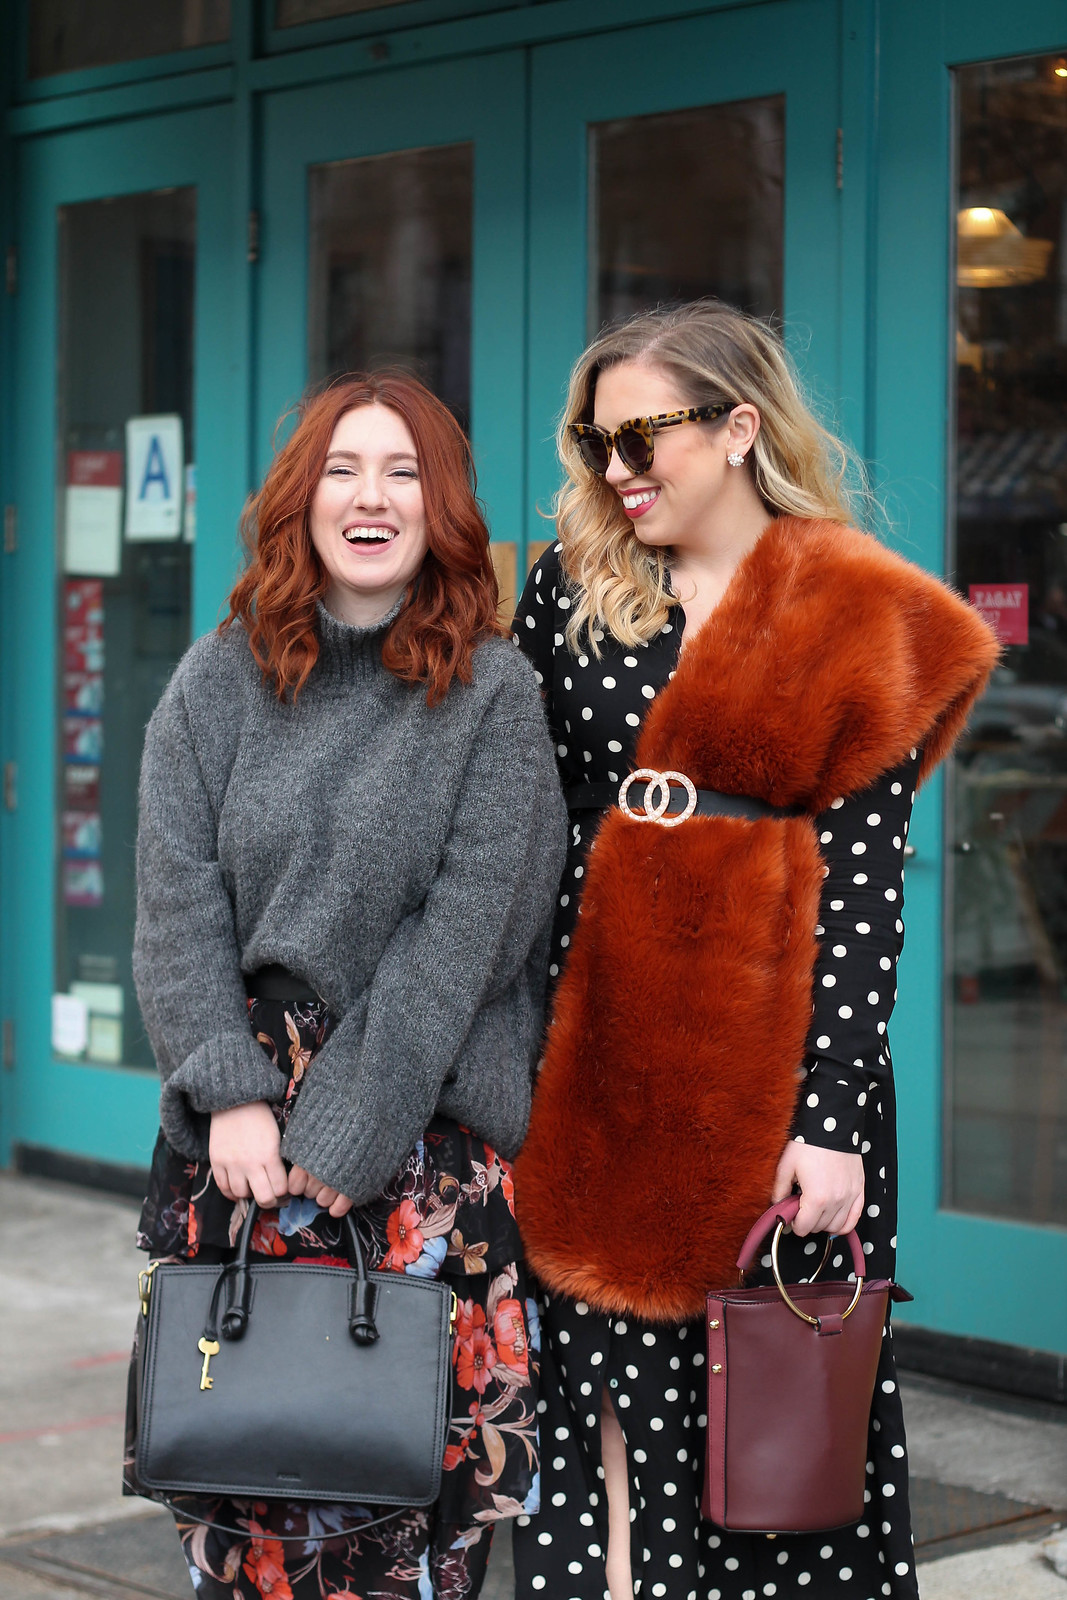 Bloggers Laughing Red Head Oversized Gray Sweater Blonde Girl Faux Fur Scarf Polka Dot Dress